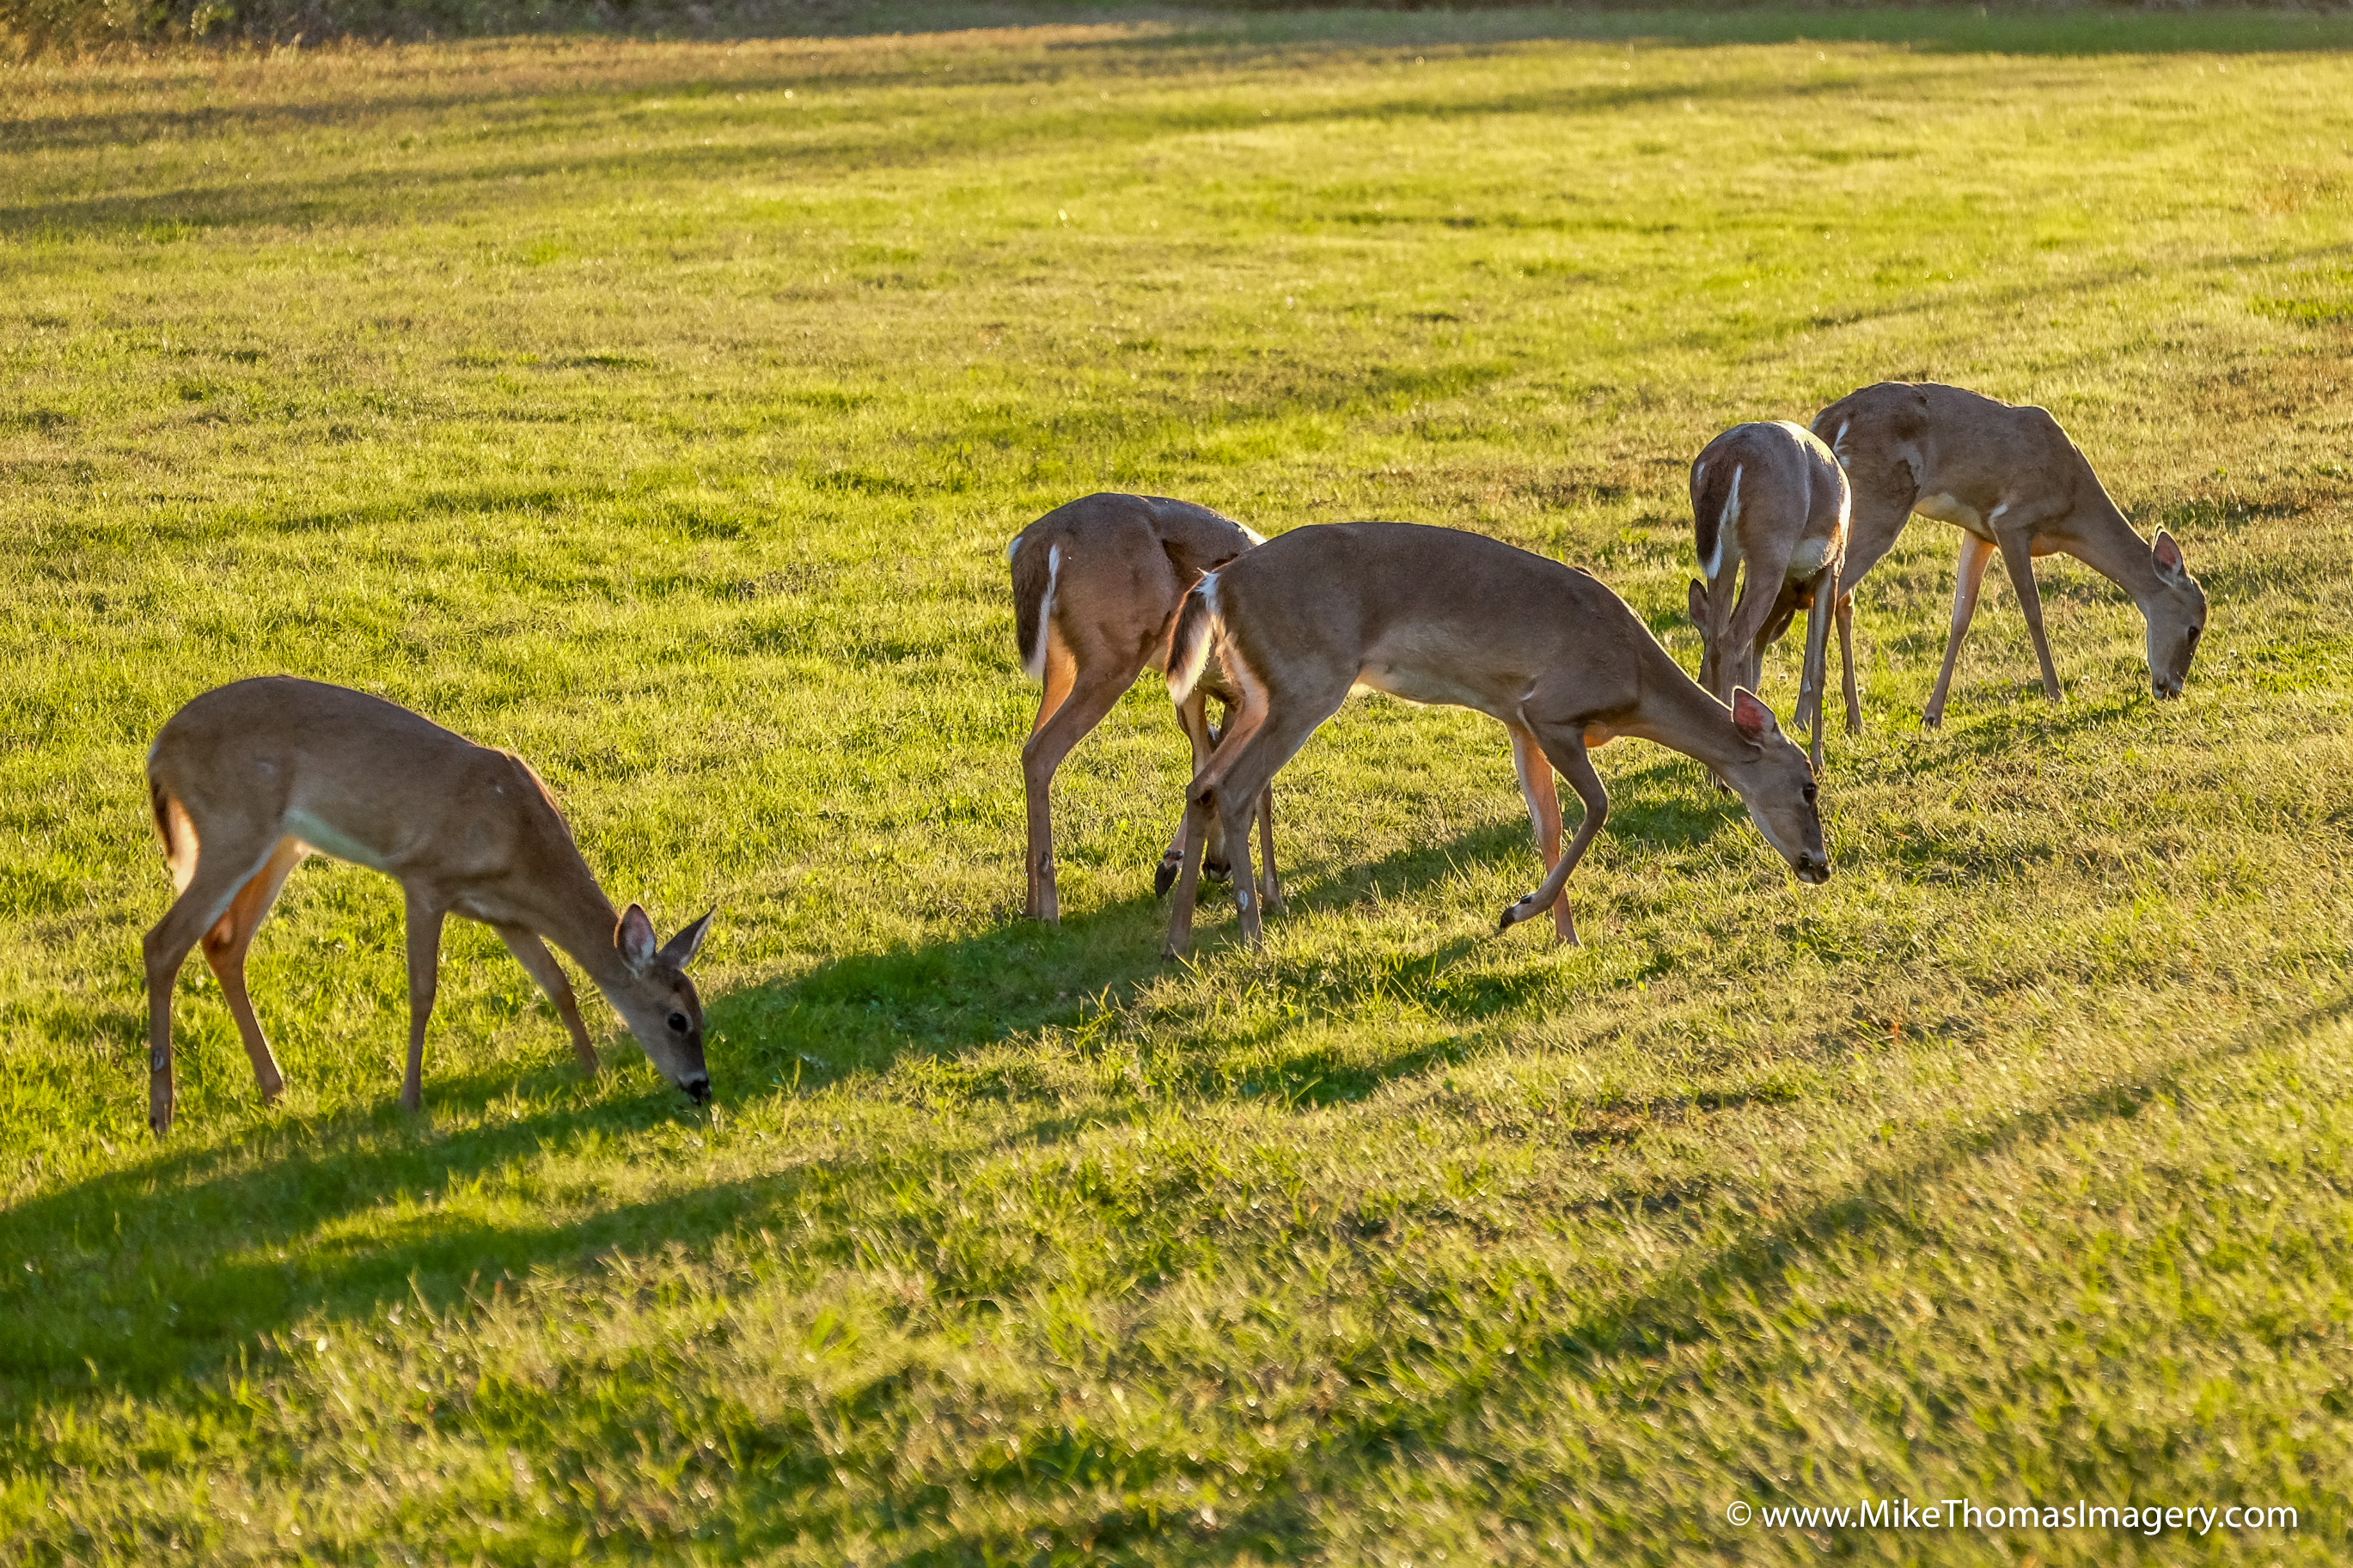 deer, bambi, nature, disney, herd, wildlife